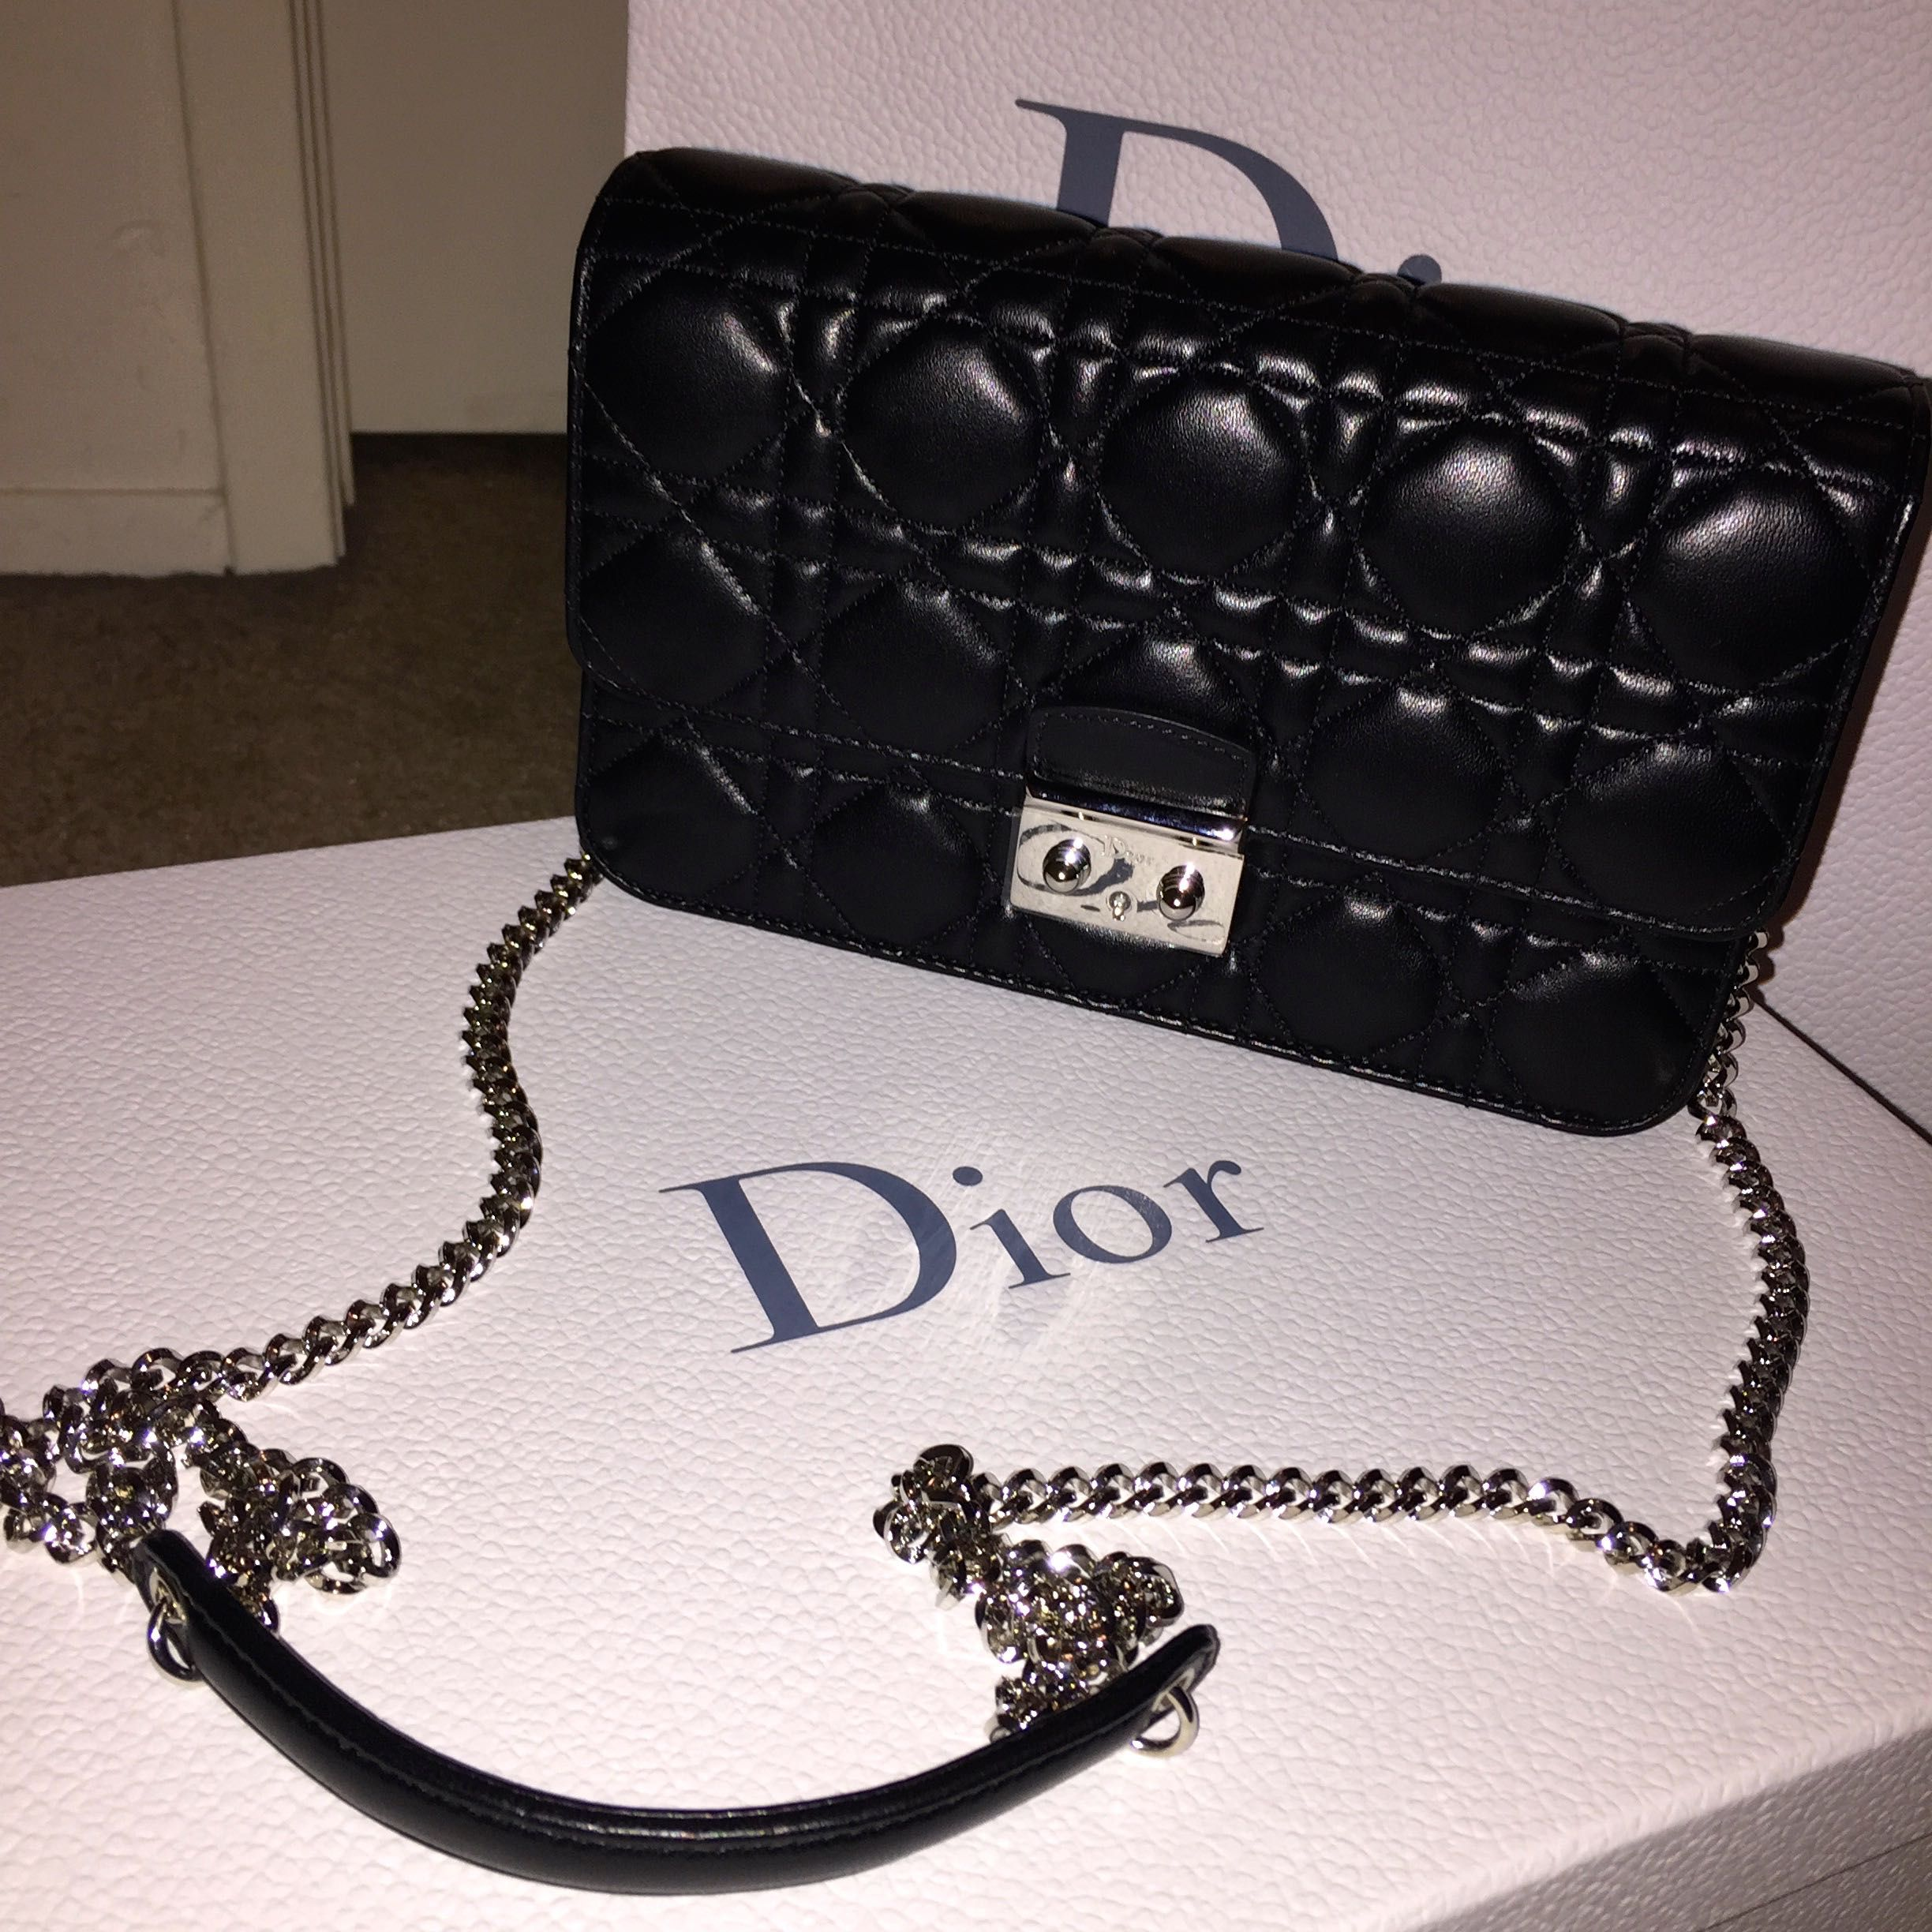 28f5f0f342 MISS DIOR PROMENADE - LARGE POUCH - BLACK LAMBSKIN WITH SILVERHARDWARE -  MADE IN ITALY